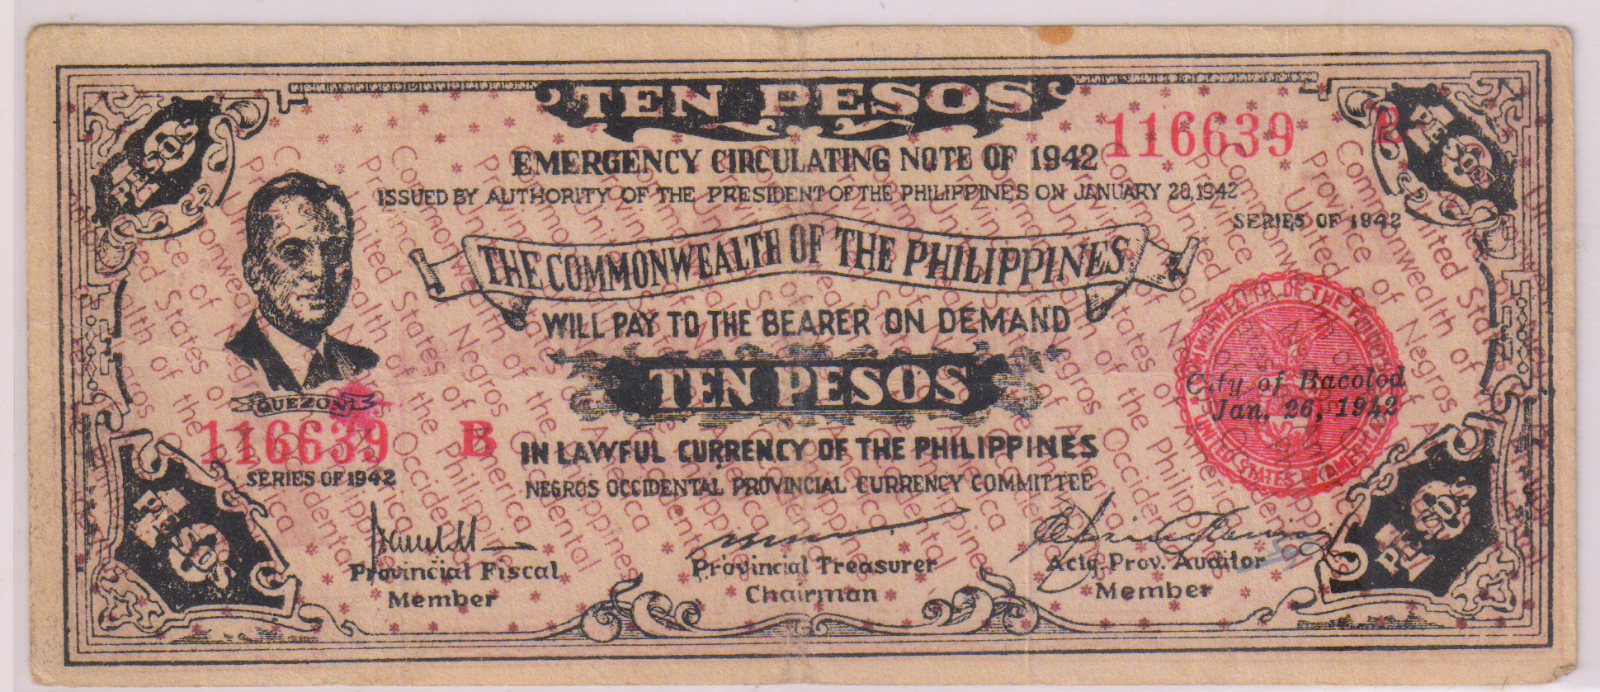 Negros- Philippines - Emergency-issue- 1 peso 1942 currency note RN E